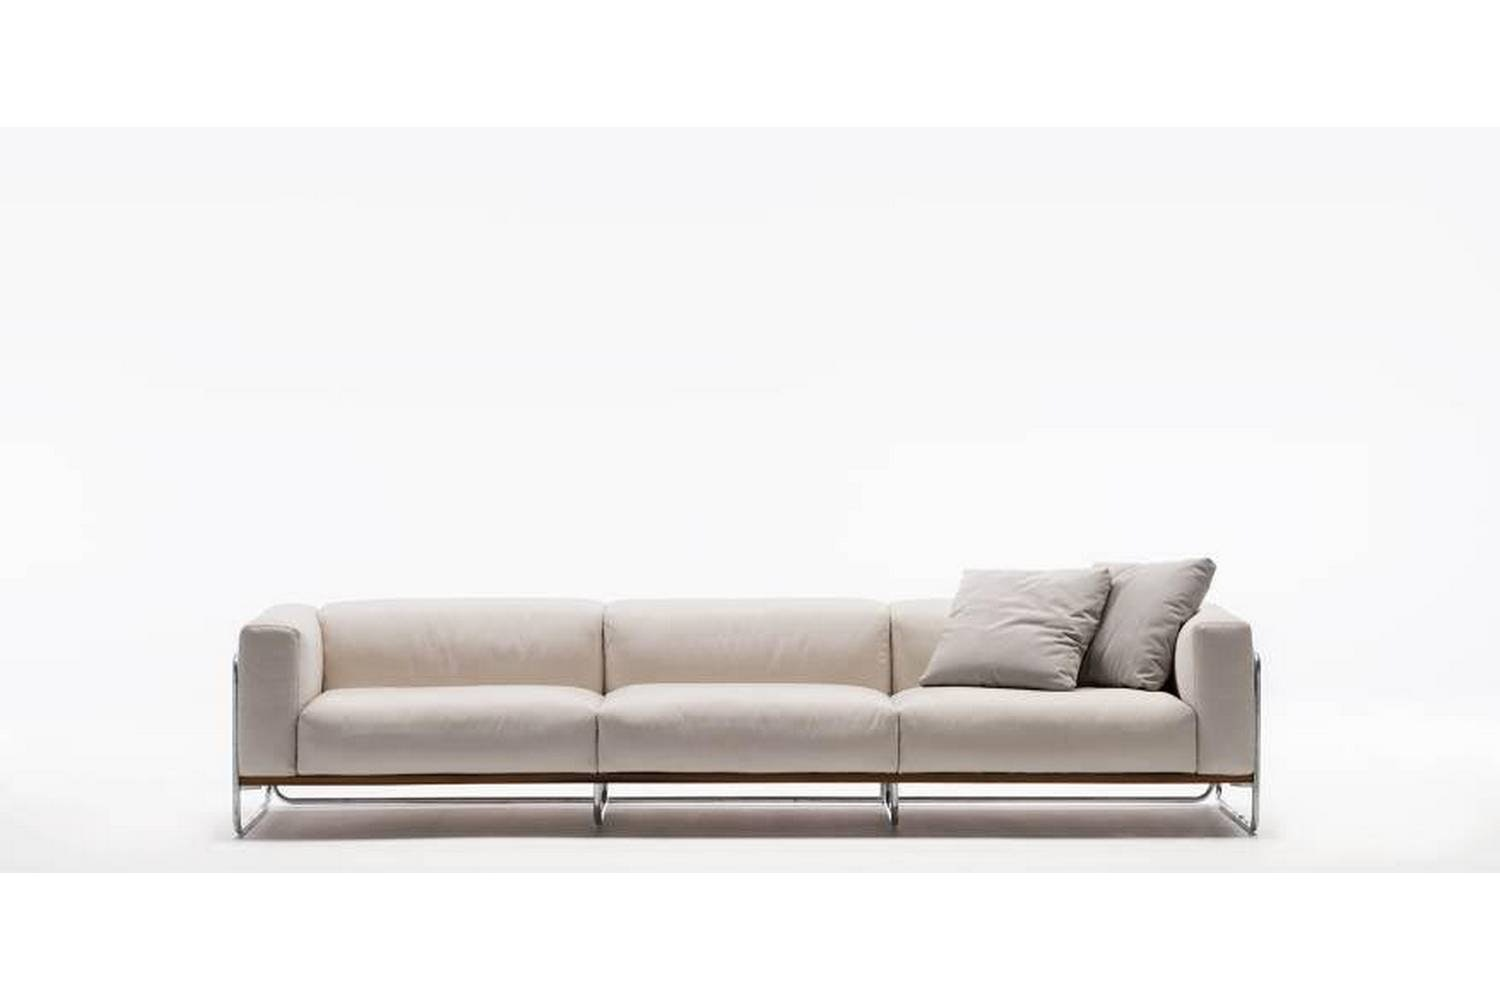 Filo Outdoor Sofa by Piero Lissoni for Living Divani